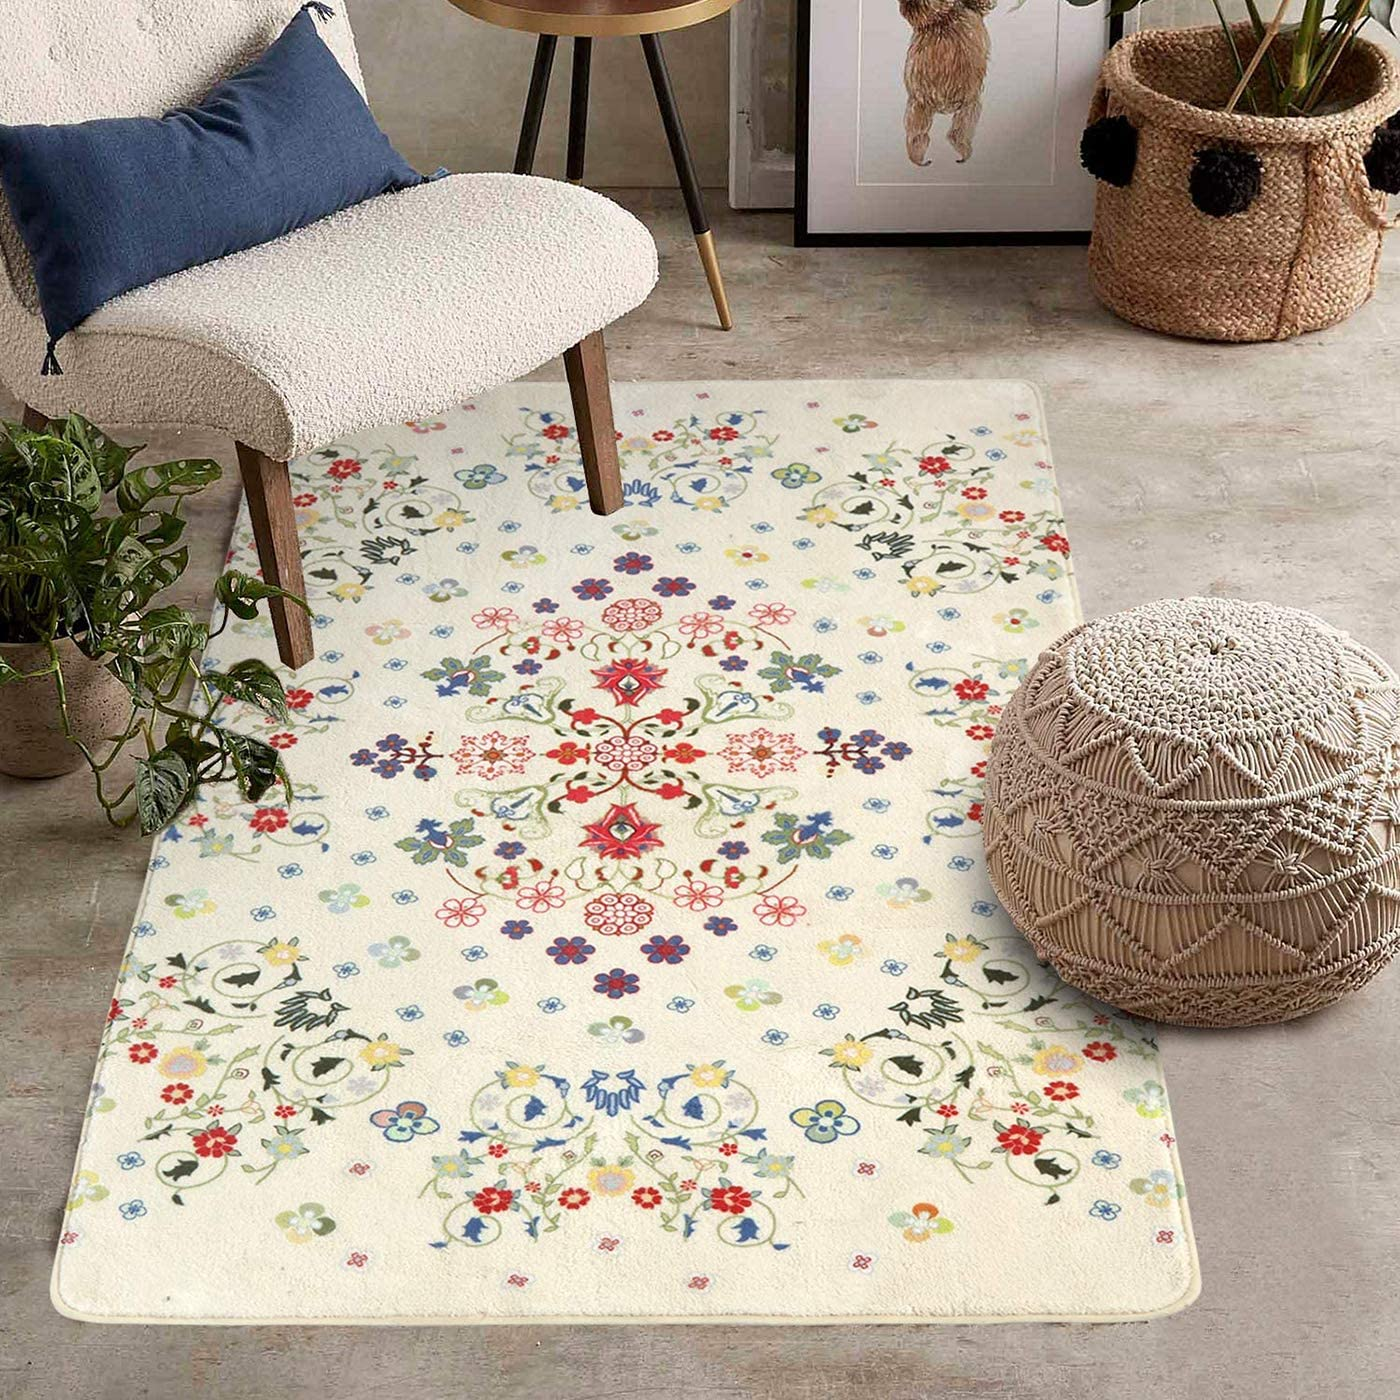 Uphome Rustic Floral Area Rug Carpets Large Beige Rectangle Throw Rugs Contemporary Romantic Country Style Floor Carpet Soft Velvet Non-Slip Washable Accent Rug for Runner Living Room Bedroom 3X5